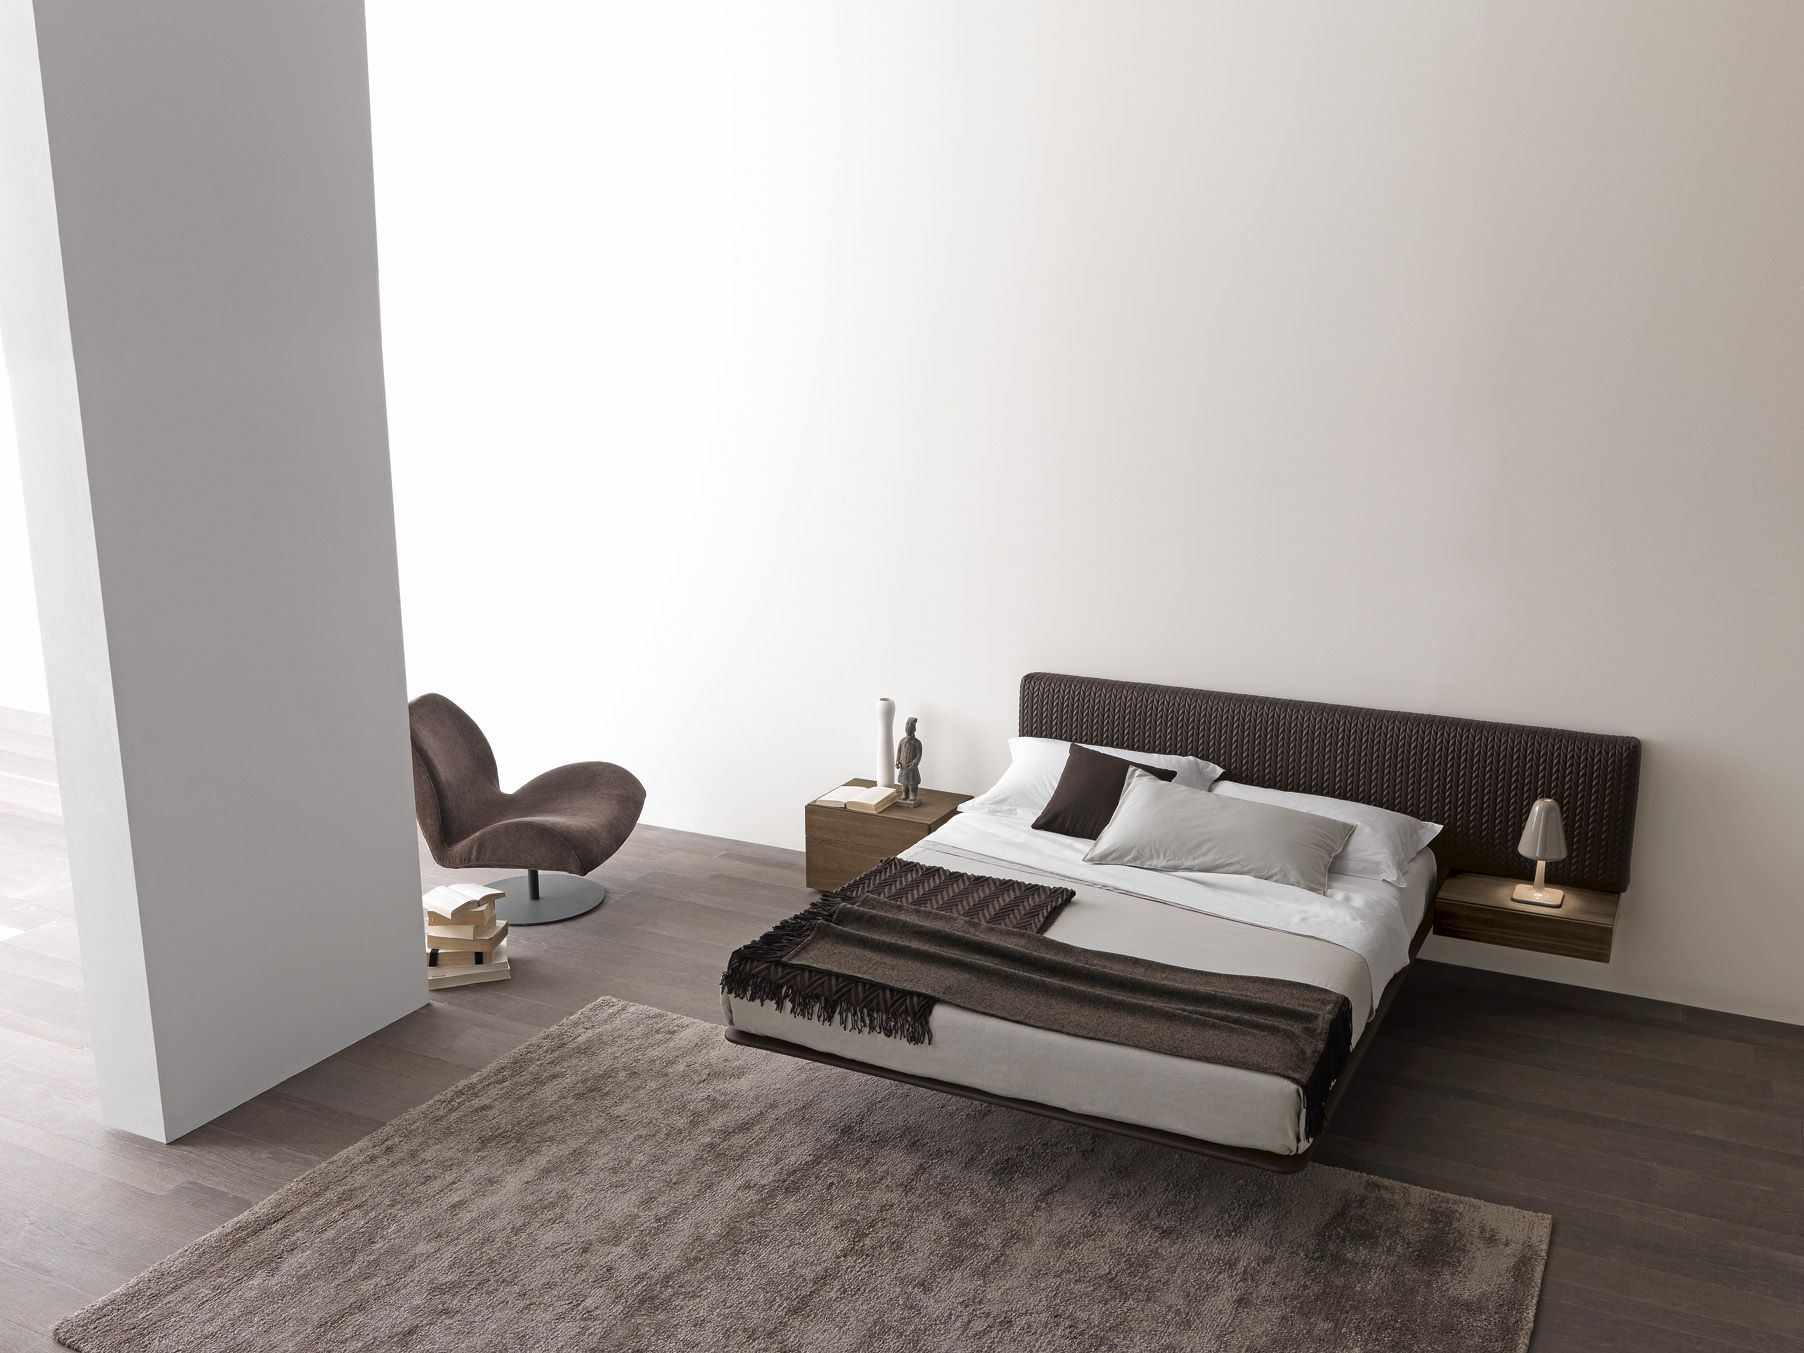 Wing system bed | PRESOTTO #bed #wingsystem #bedroom | You ...